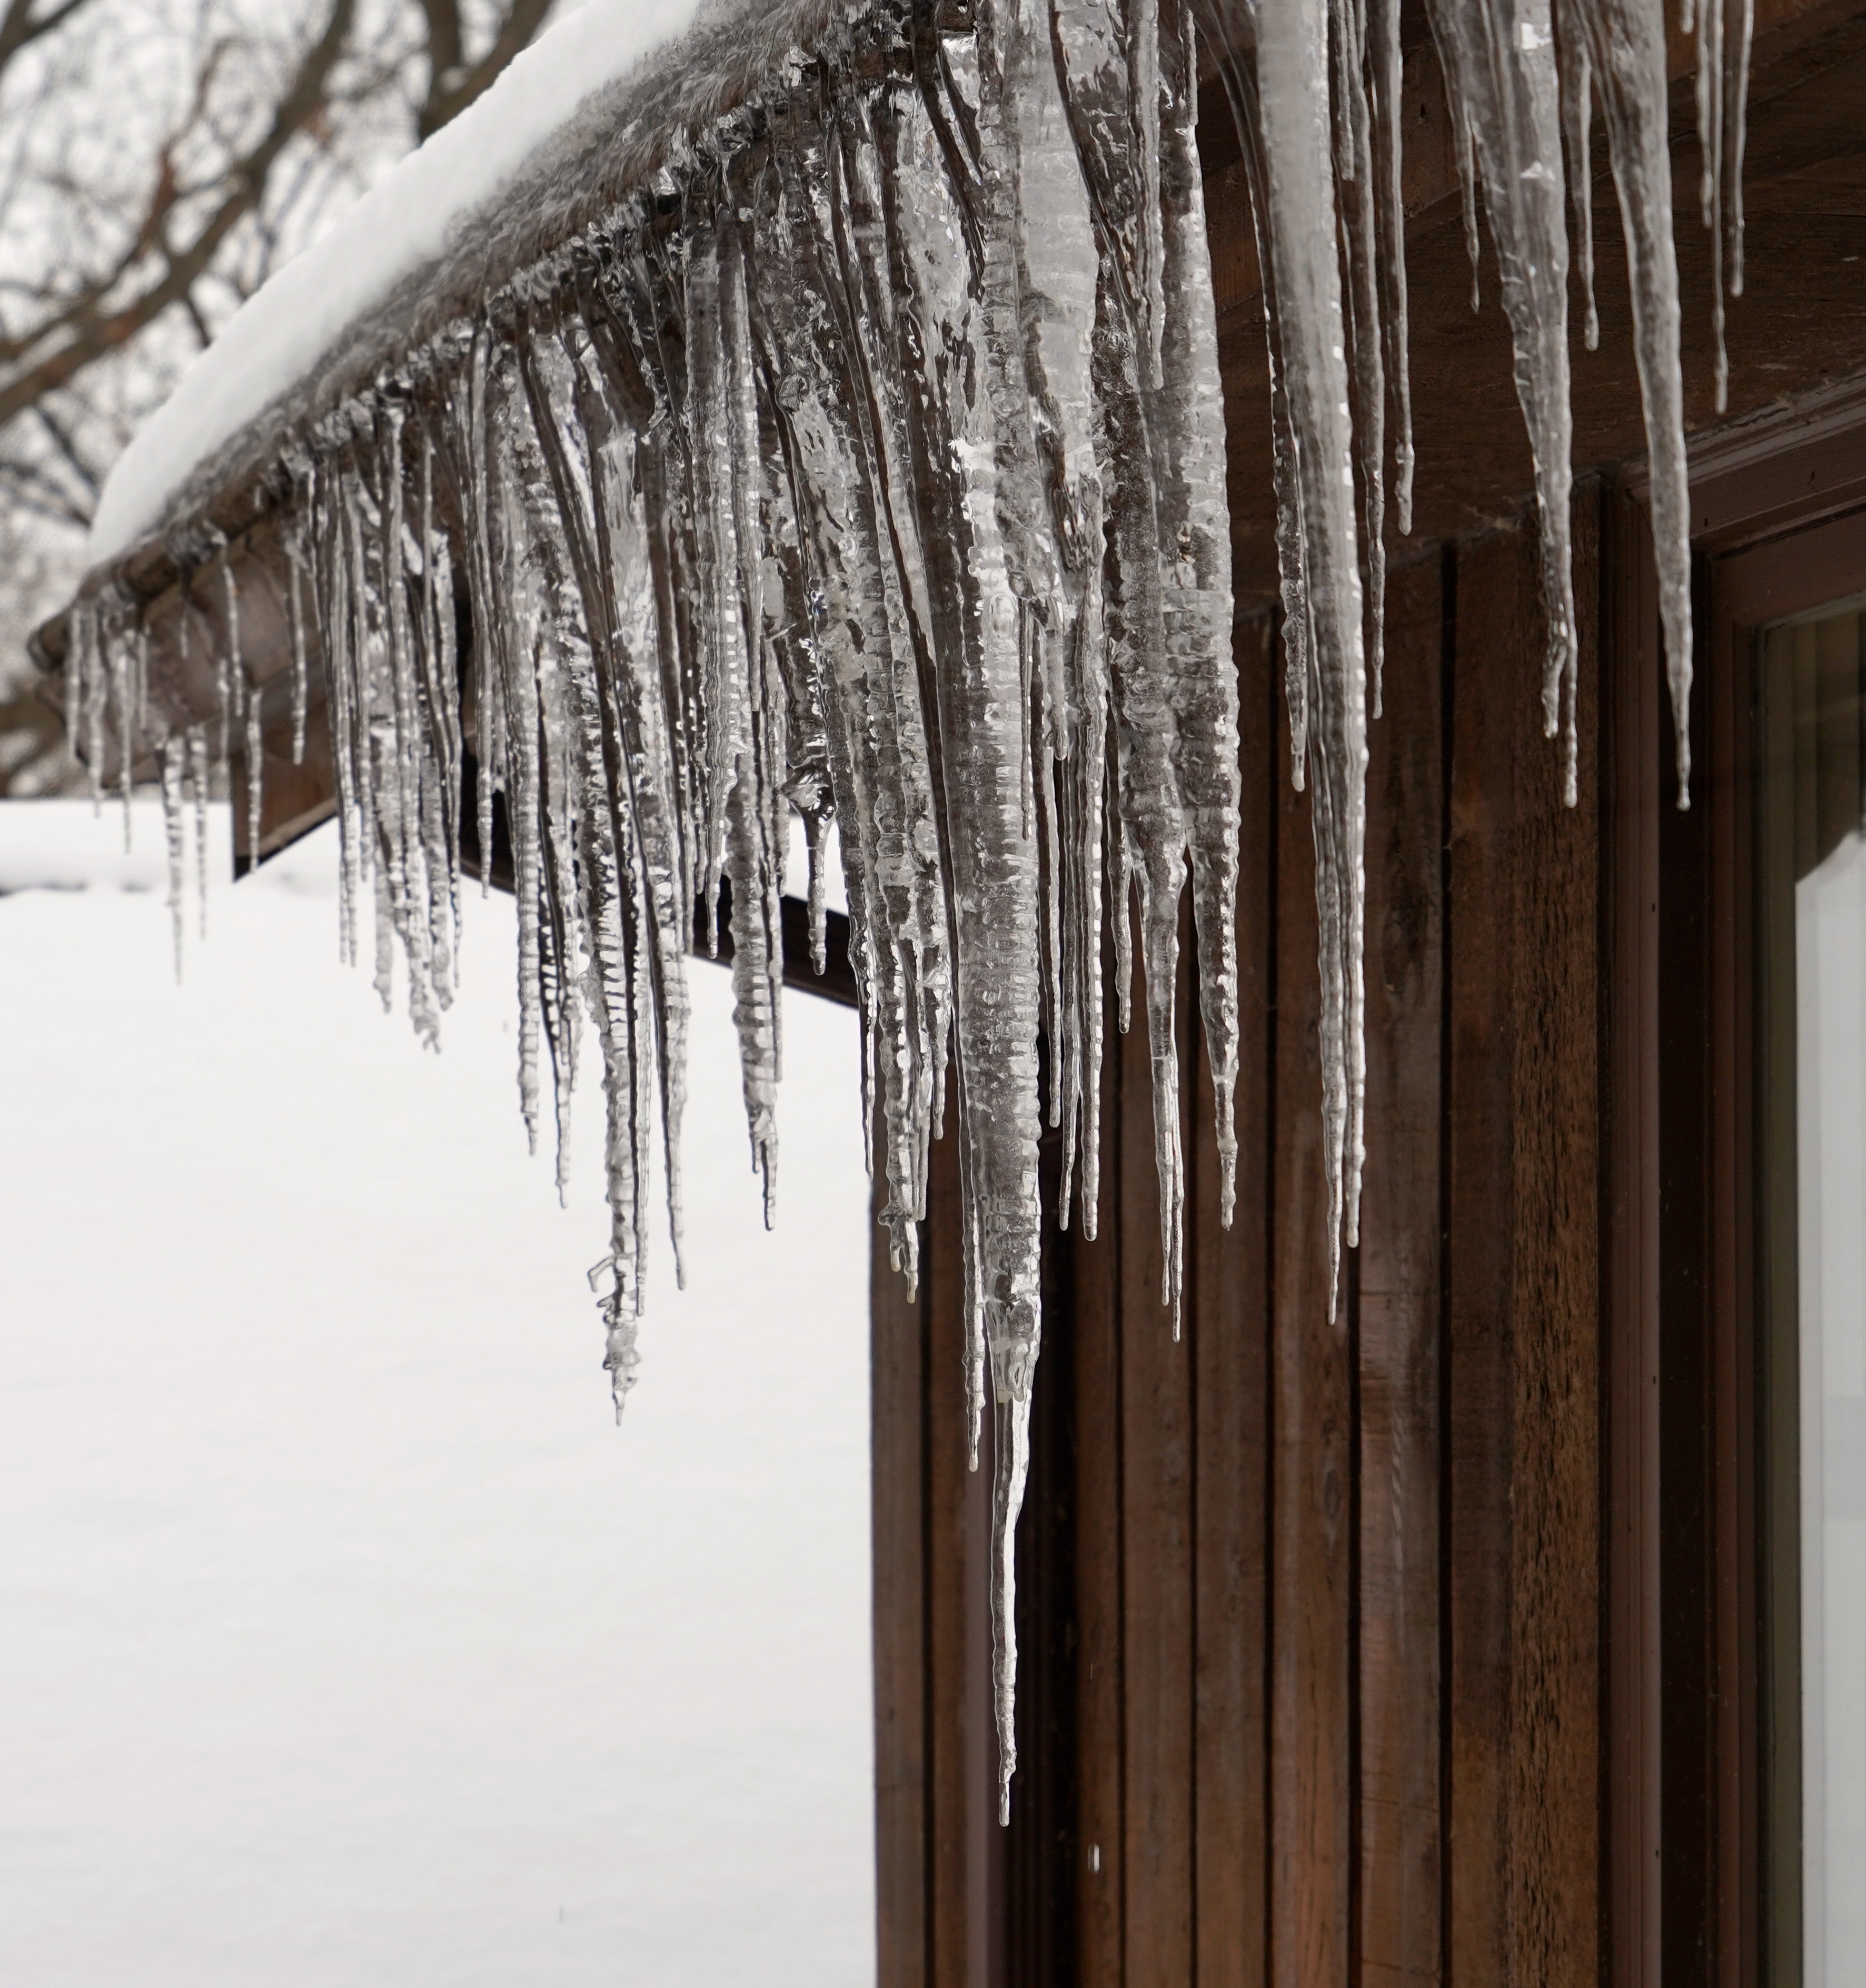 Icicles | matulathoughts